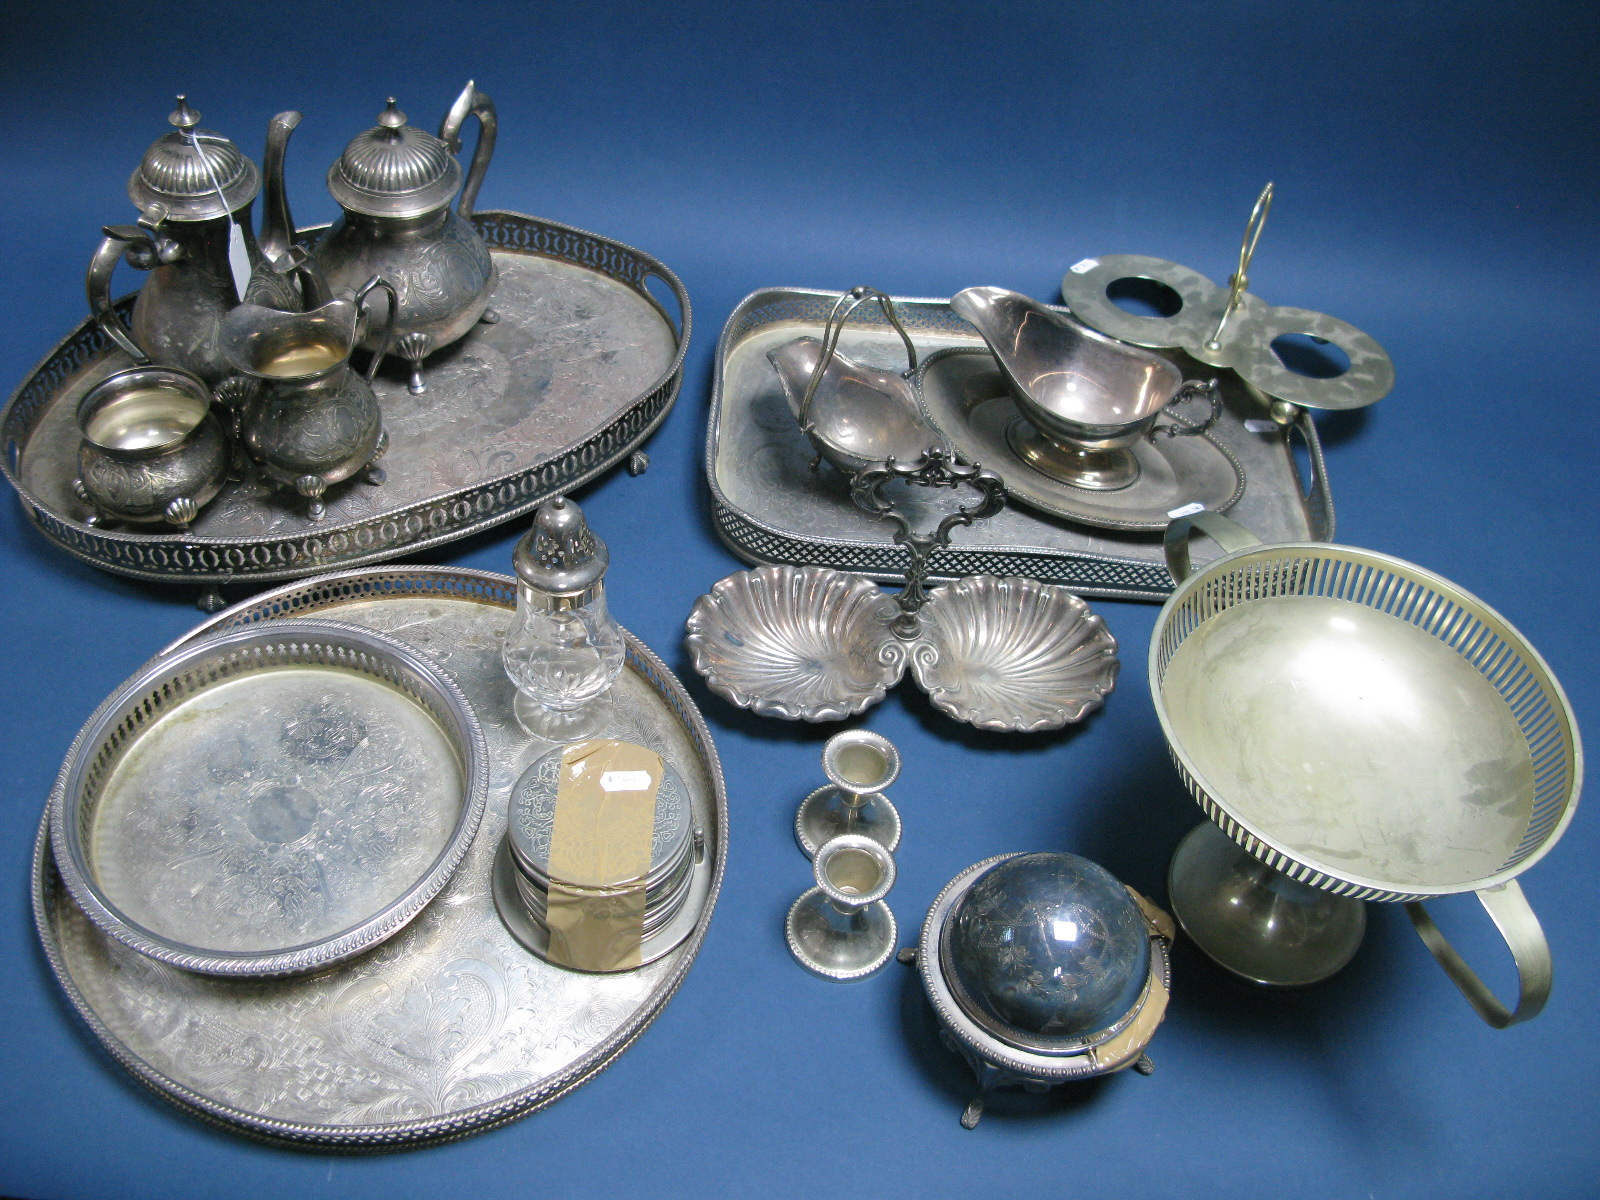 Lot 2 - A Mixed Lot of Assorted Plated Ware, including decorative four piece tea set, circular, oval and